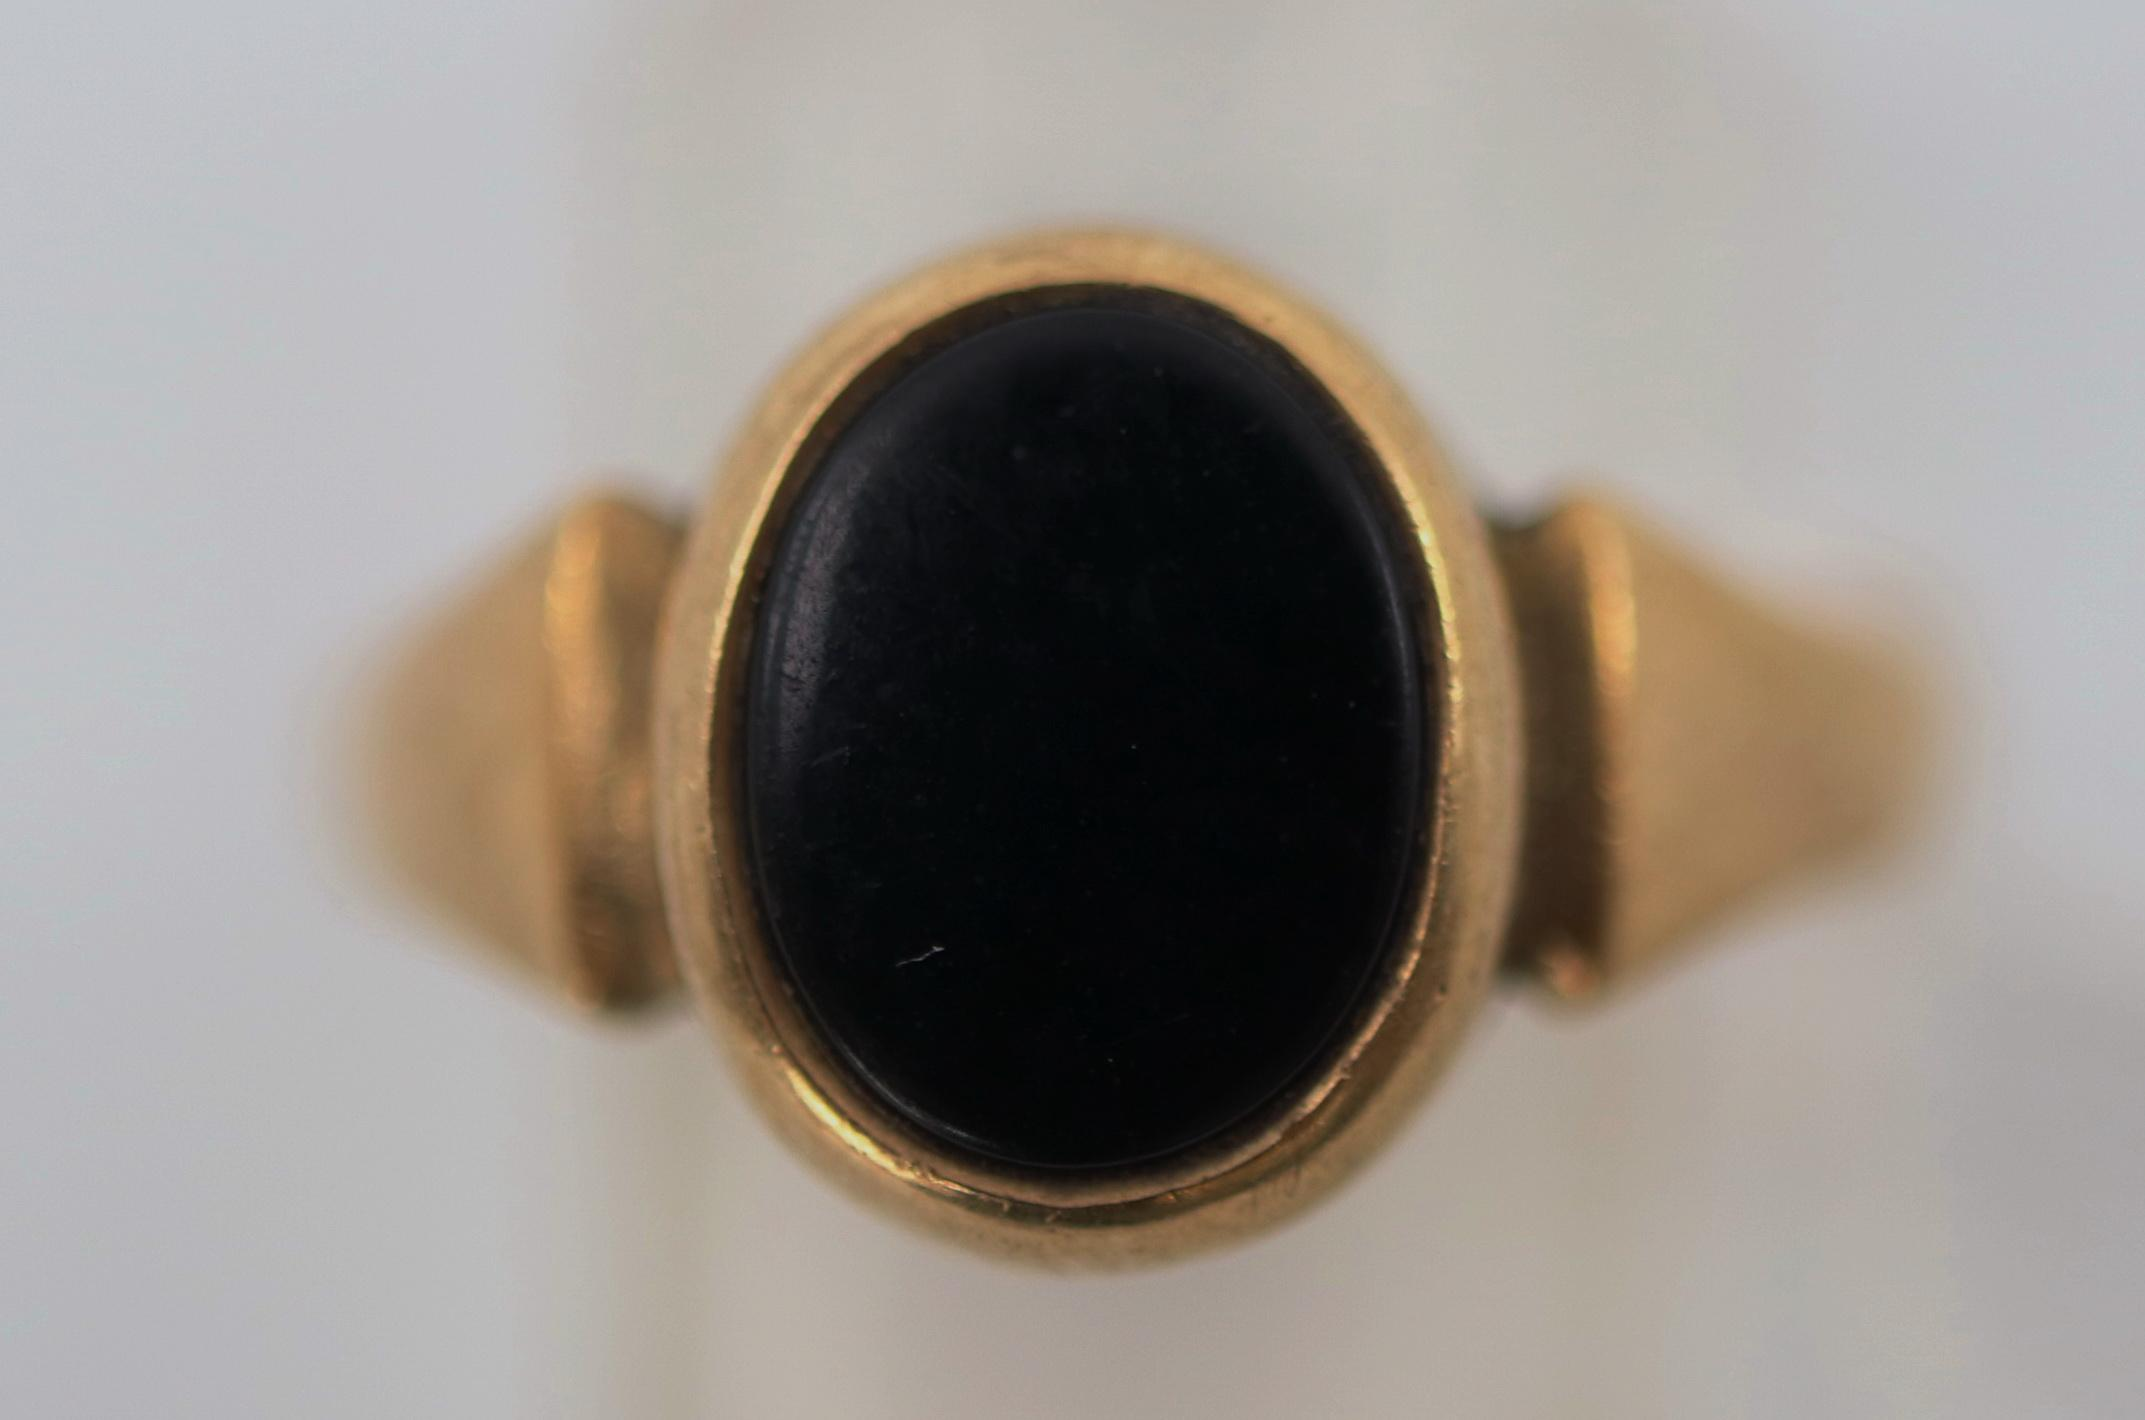 9CT AND BLACK ONYX RING SIZE O, 3.2 GRAMS TOTAL WEIGHT